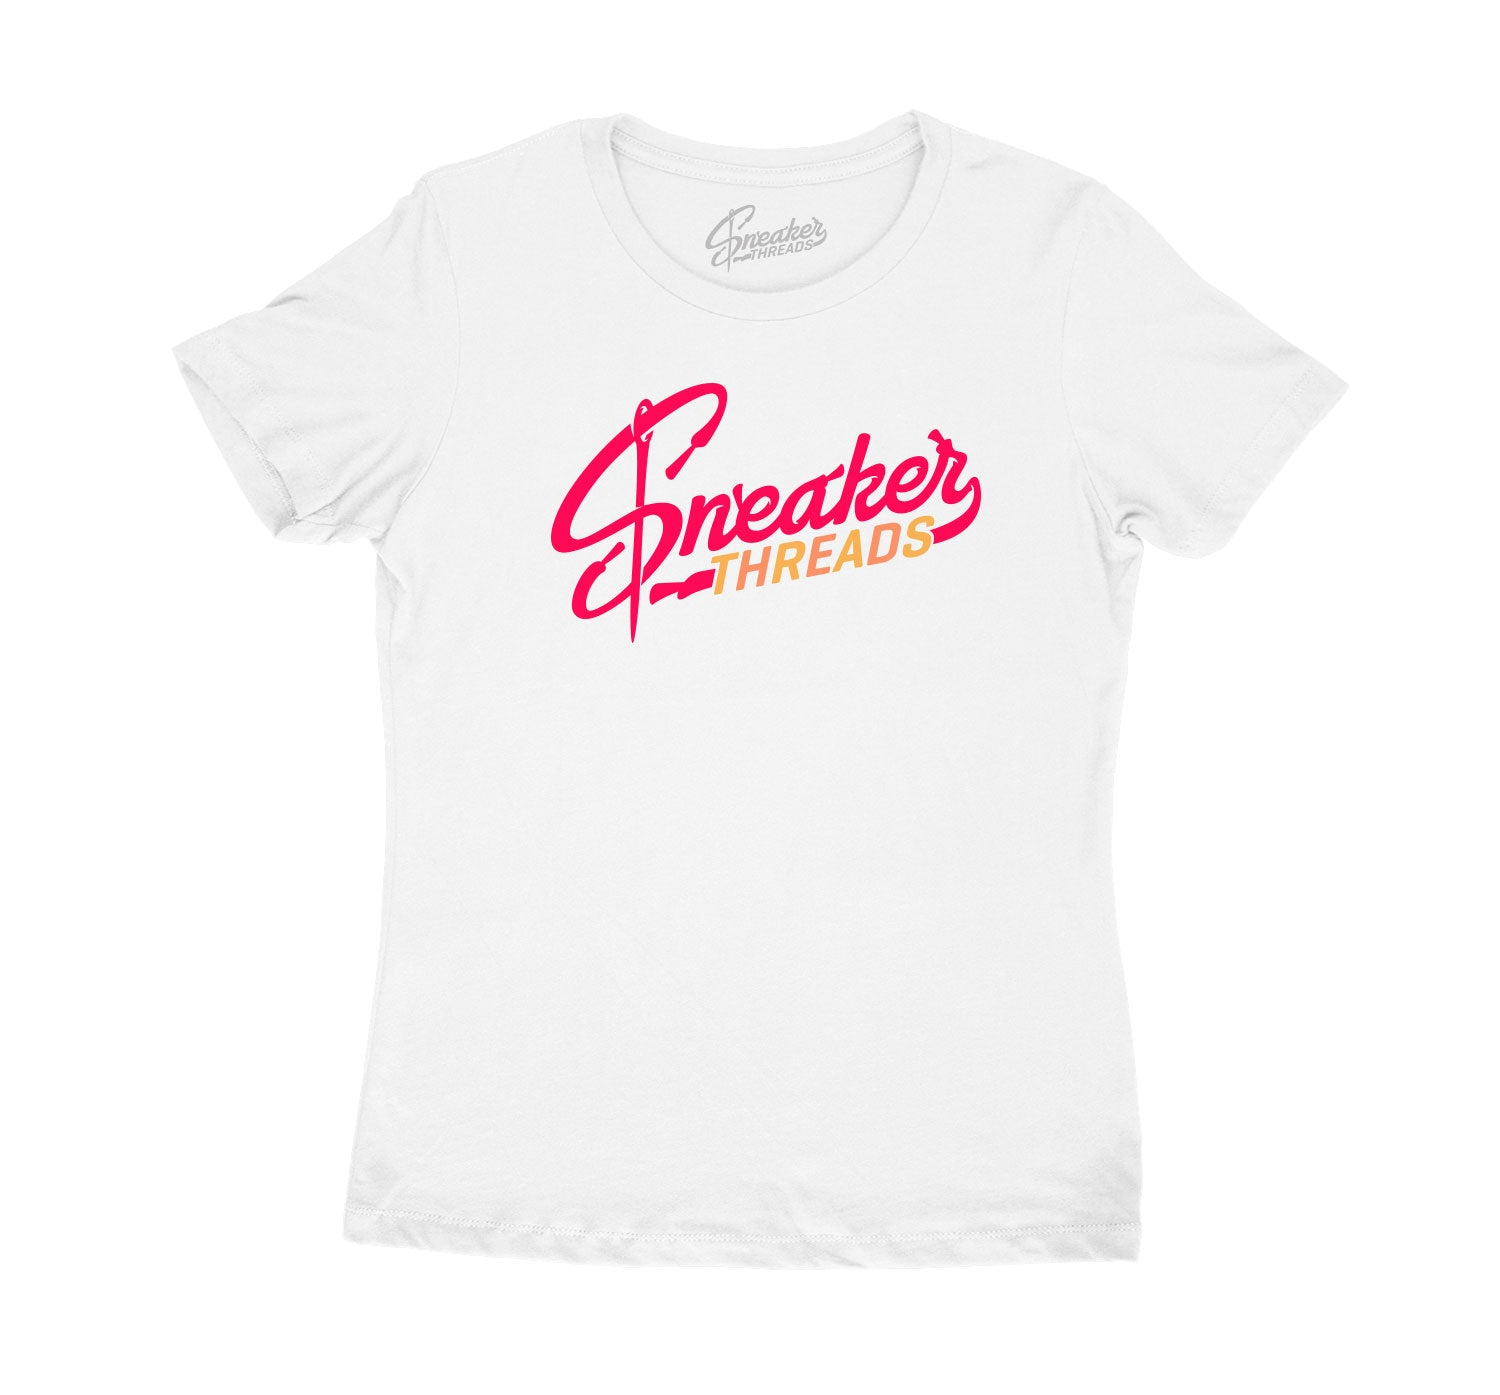 Shirts for women to match Jordan 12 Hot Punch sneakers